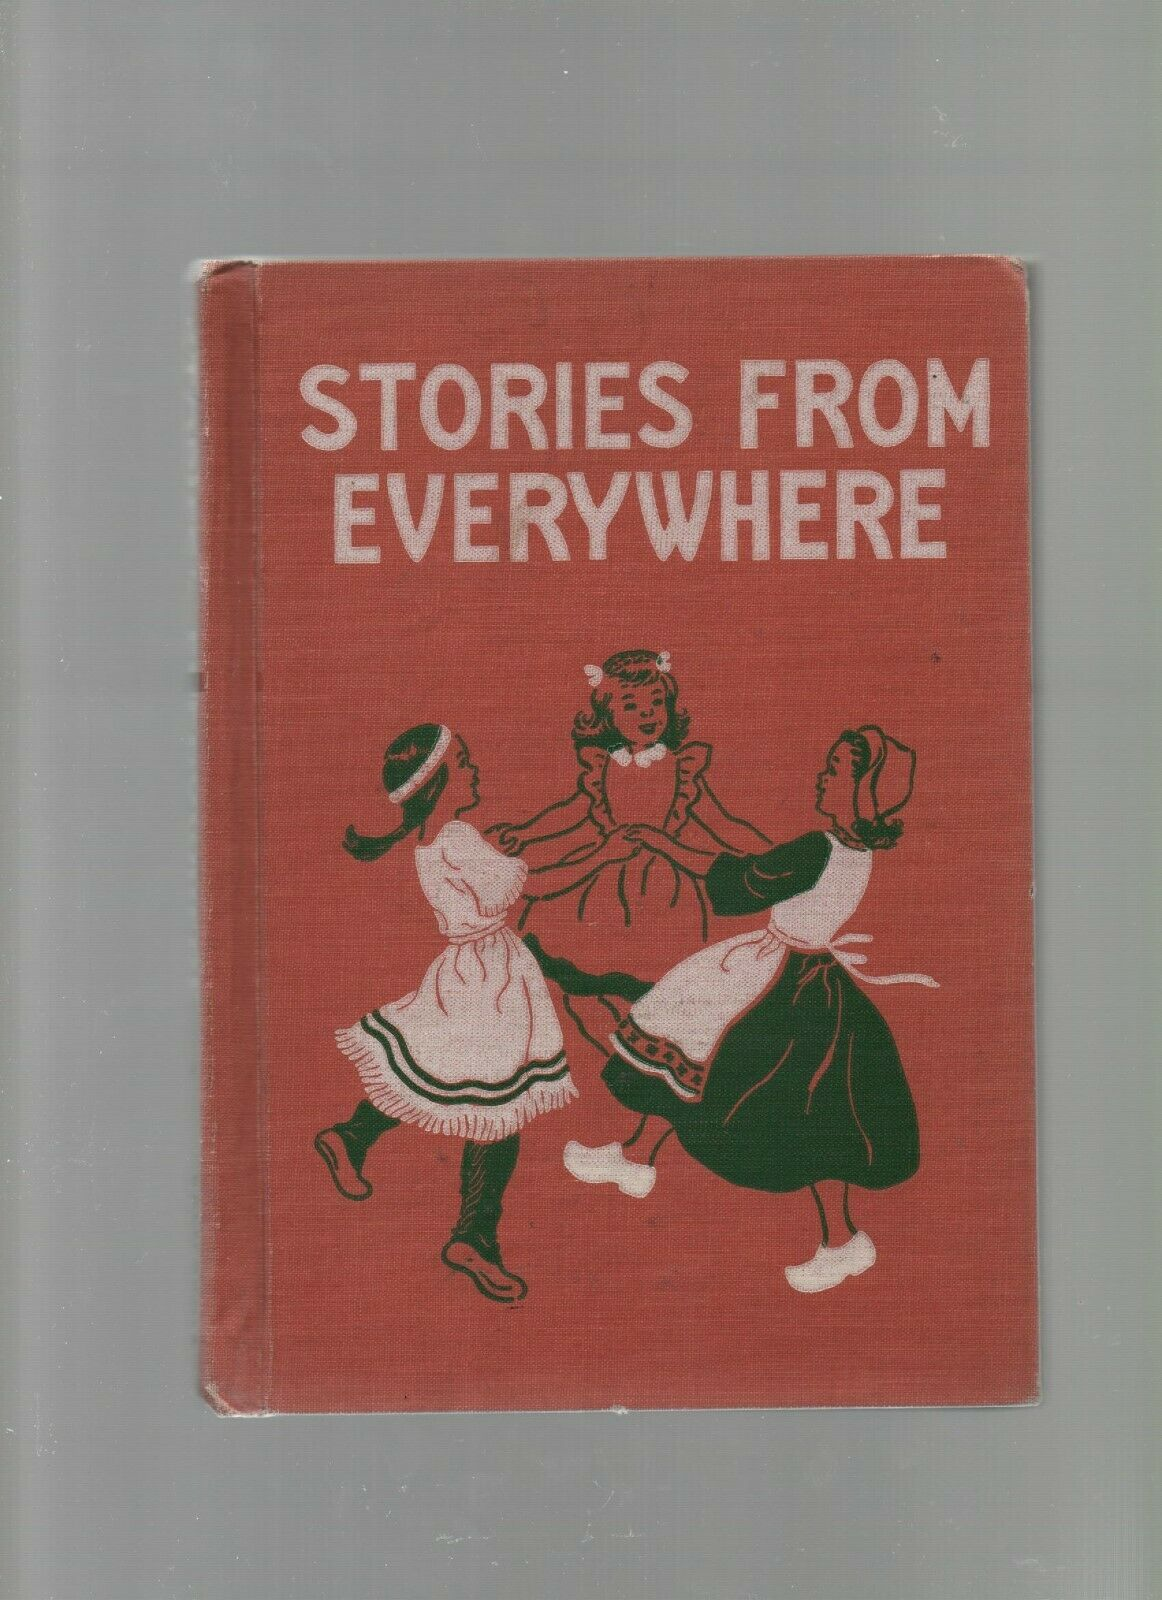 Stories From Everywhere - Guy L. Bond - HC - 1954 - California State Series.